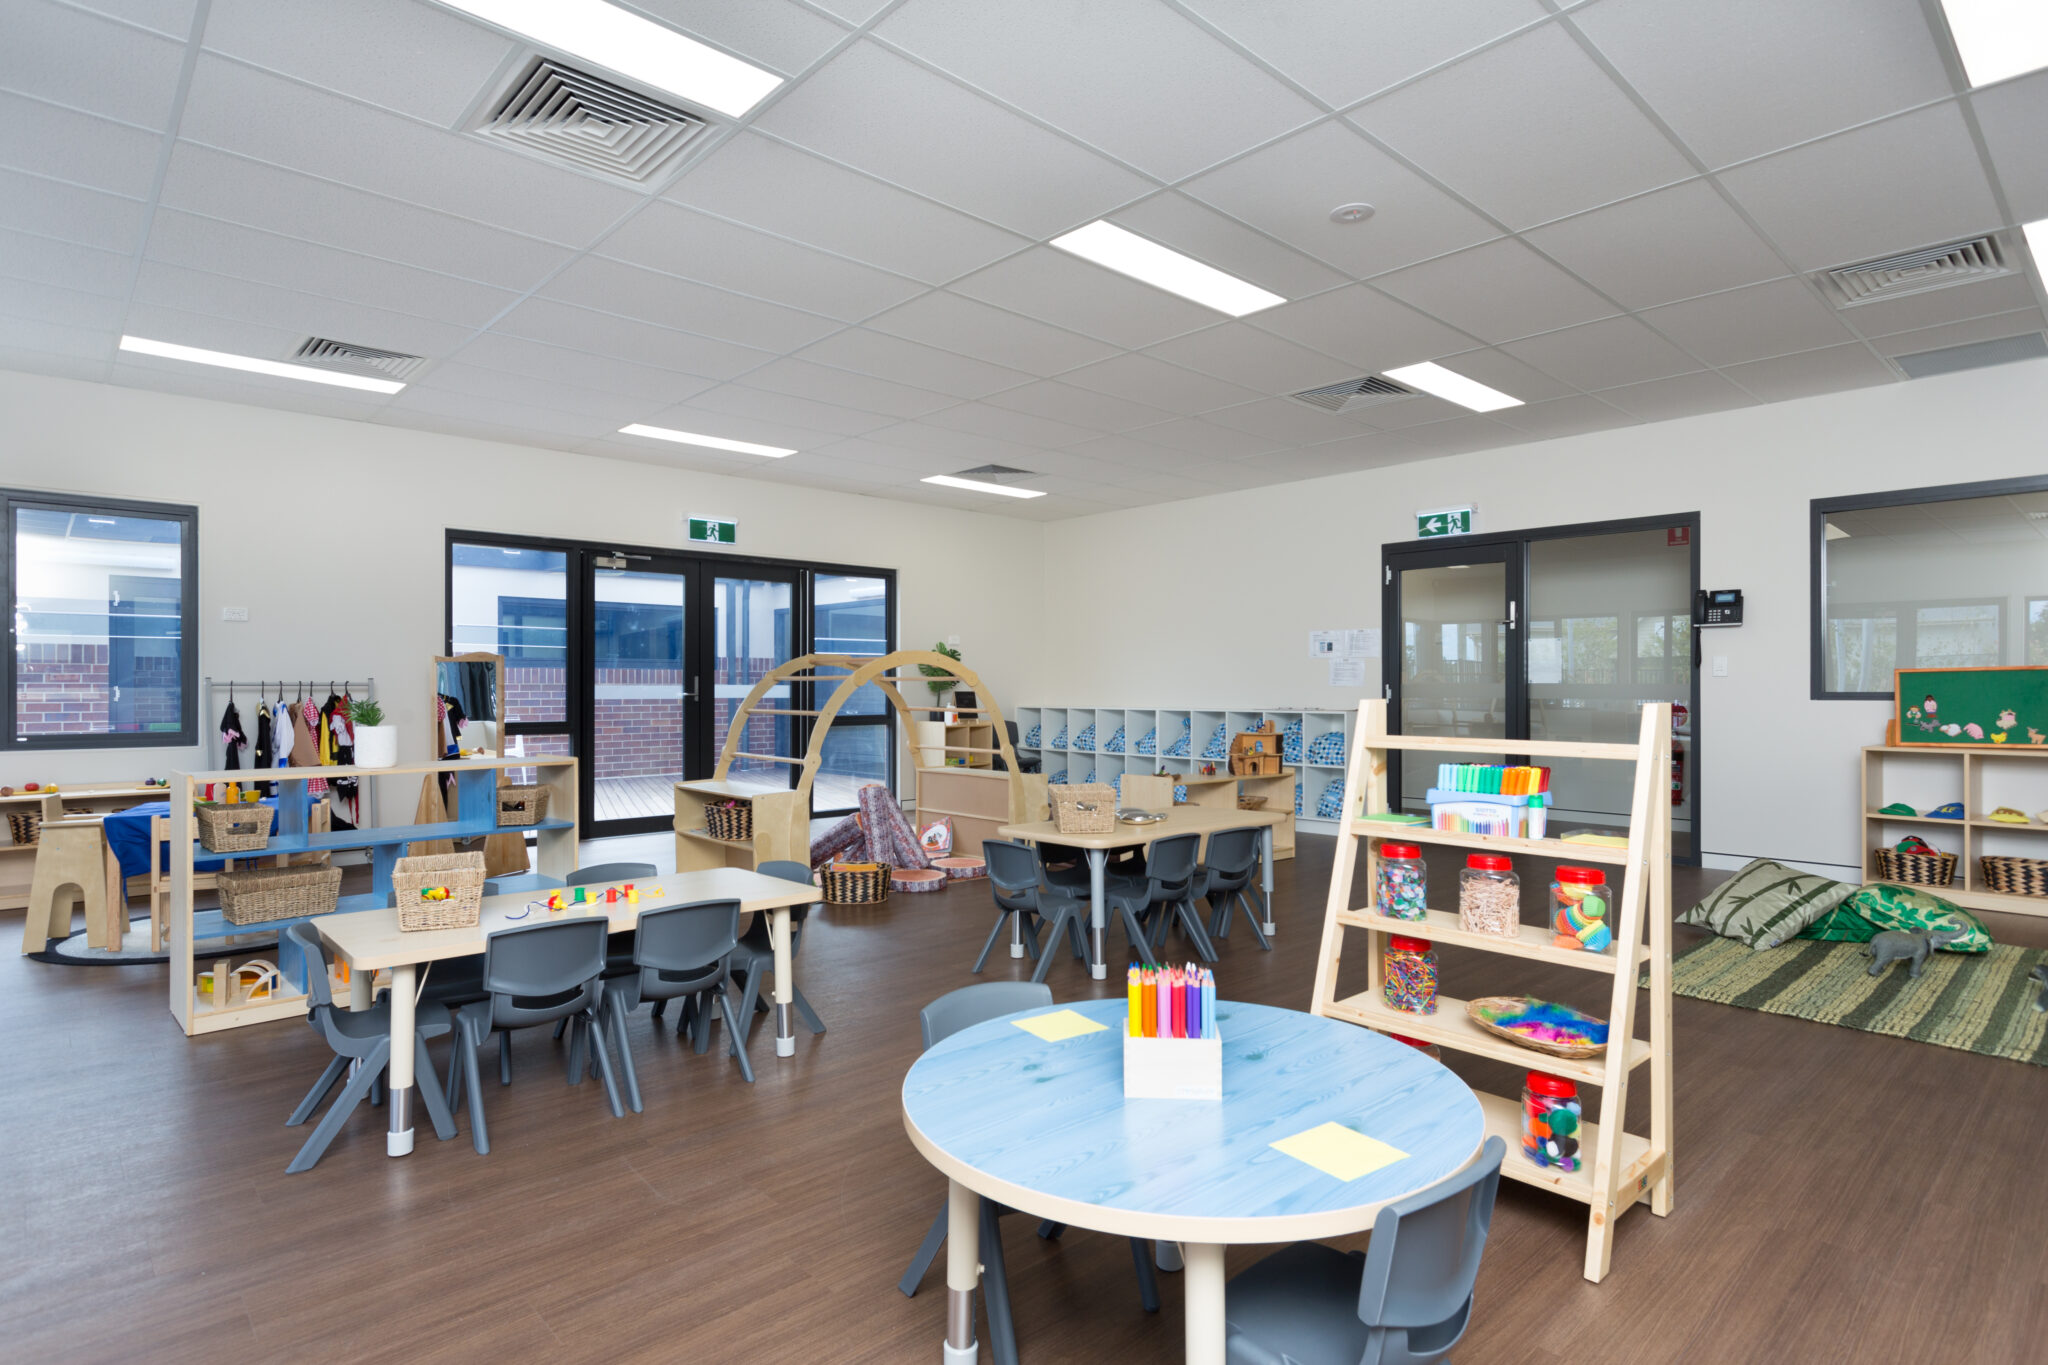 Ken Tubman Drive Early Learning and Kinder-21